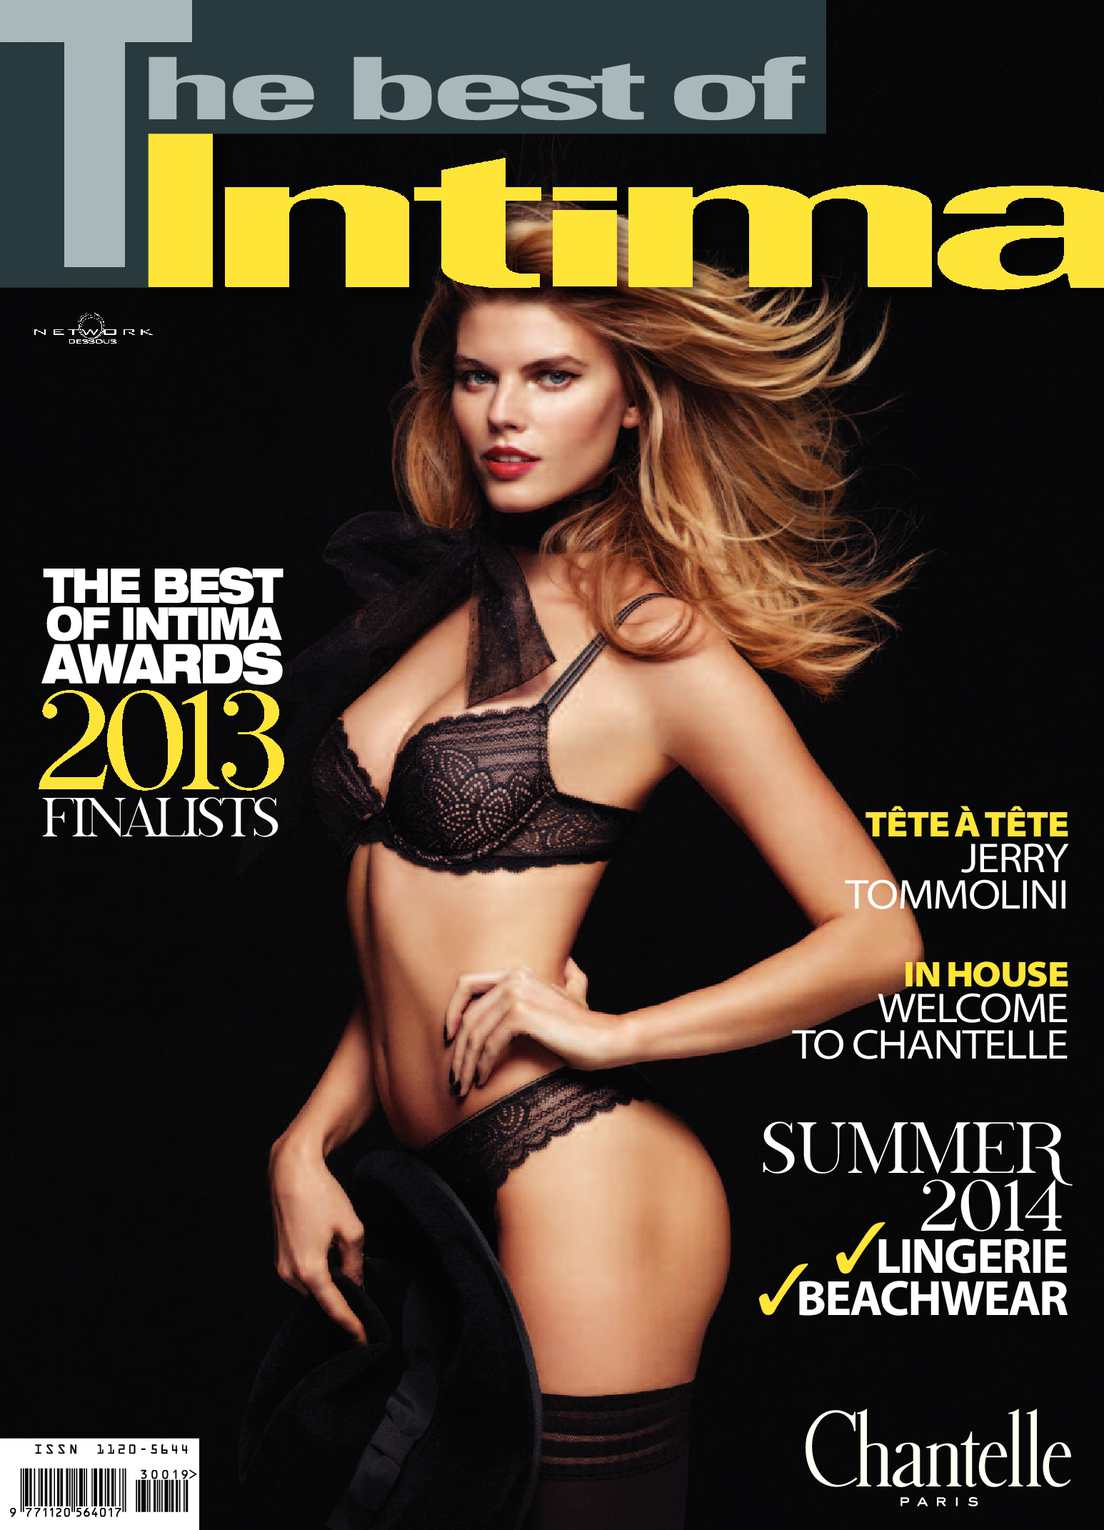 THE BEST OF INTIMA - August 2013